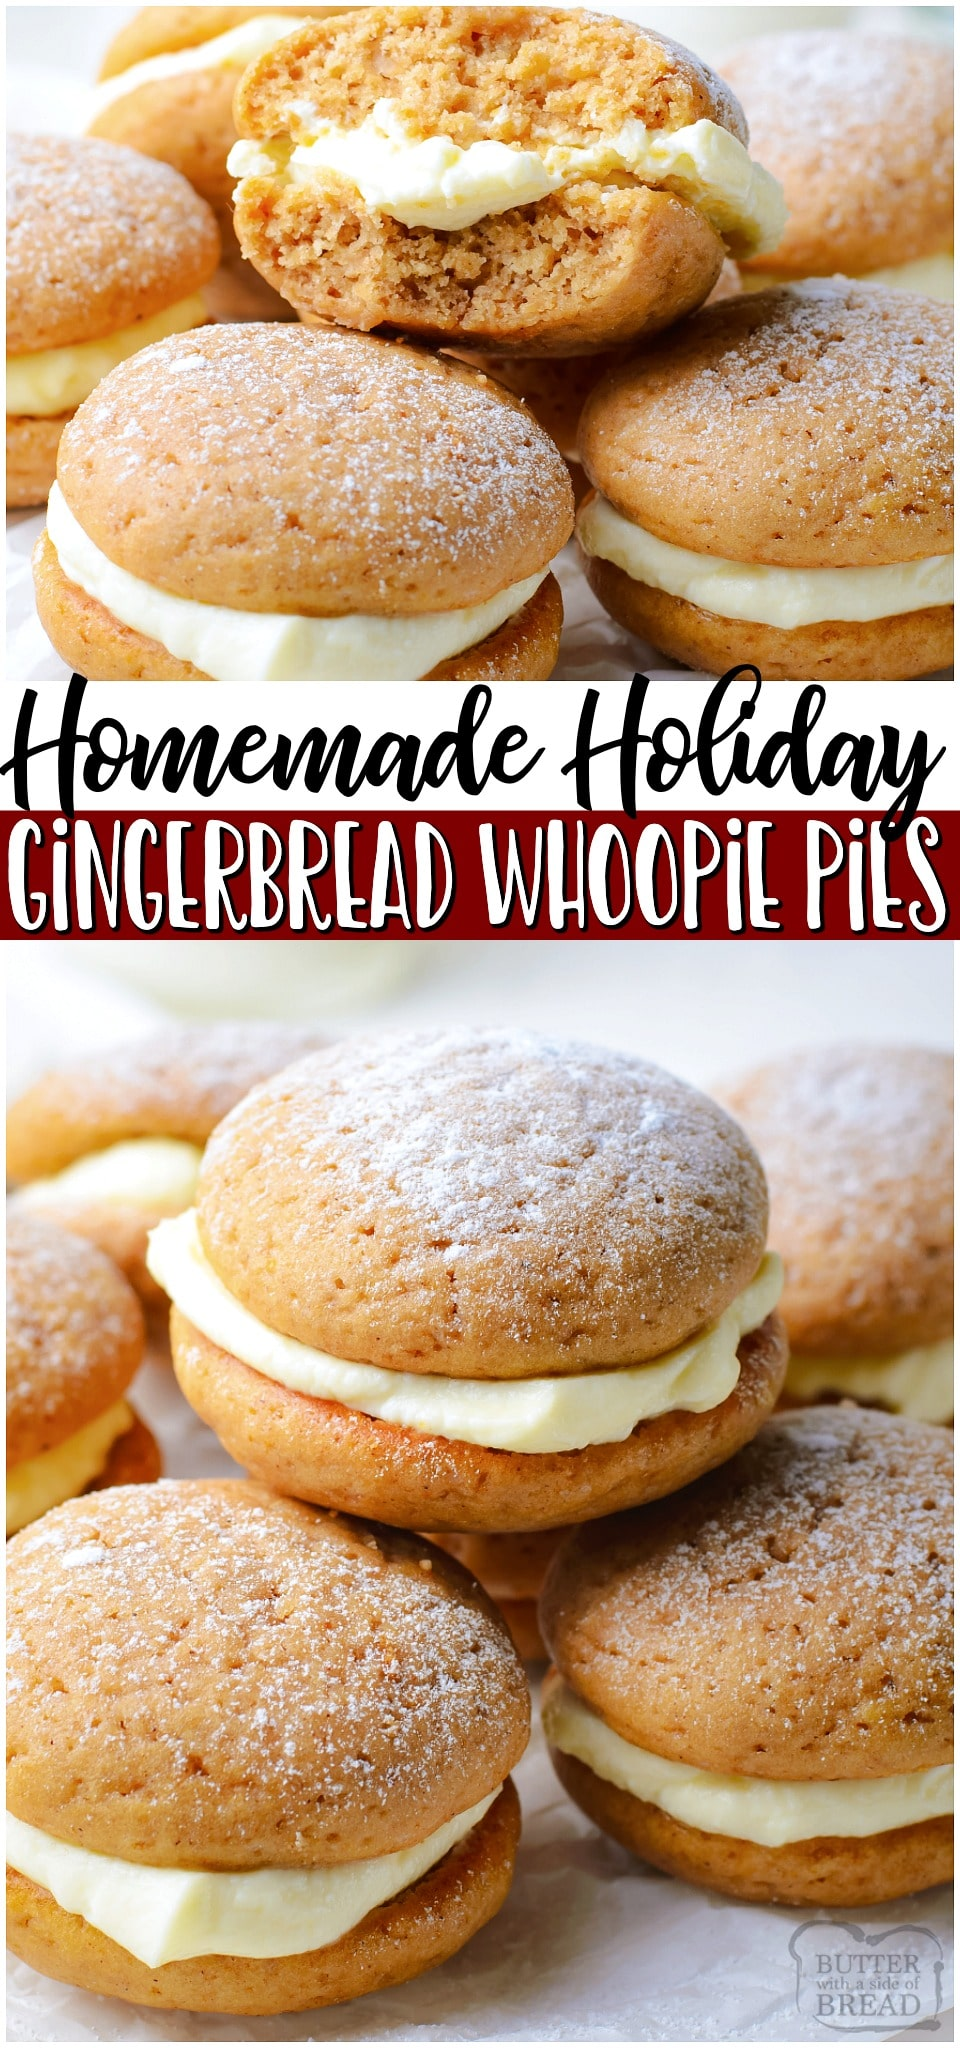 Gingerbread whoopie pies are soft, spiced gingerbread cookies with a lovely cream cheese filling. Perfect gingerbread treat for the holidays!#gingerbread #whoopiepie #dessert #holiday #baking #easyrecipe